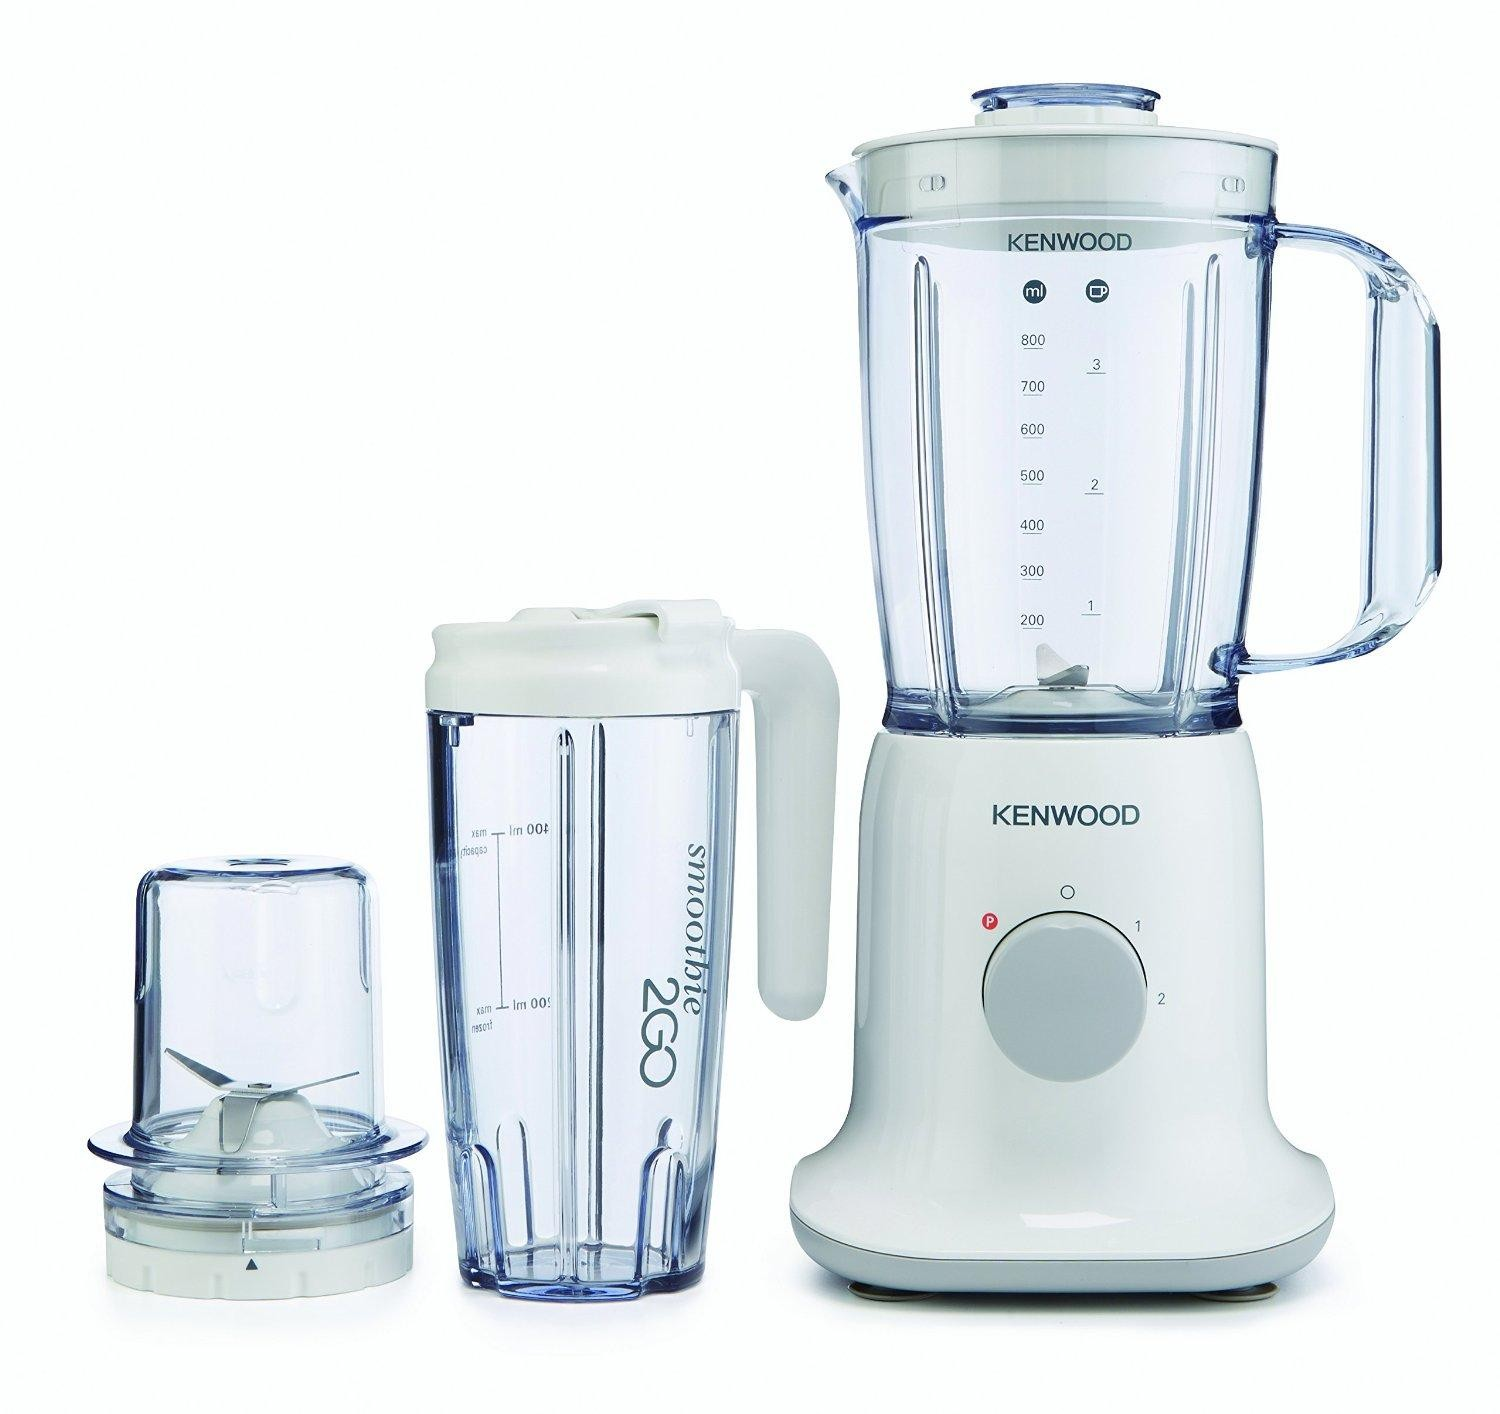 Kenwood%203%20-%201%20Blender.jpg